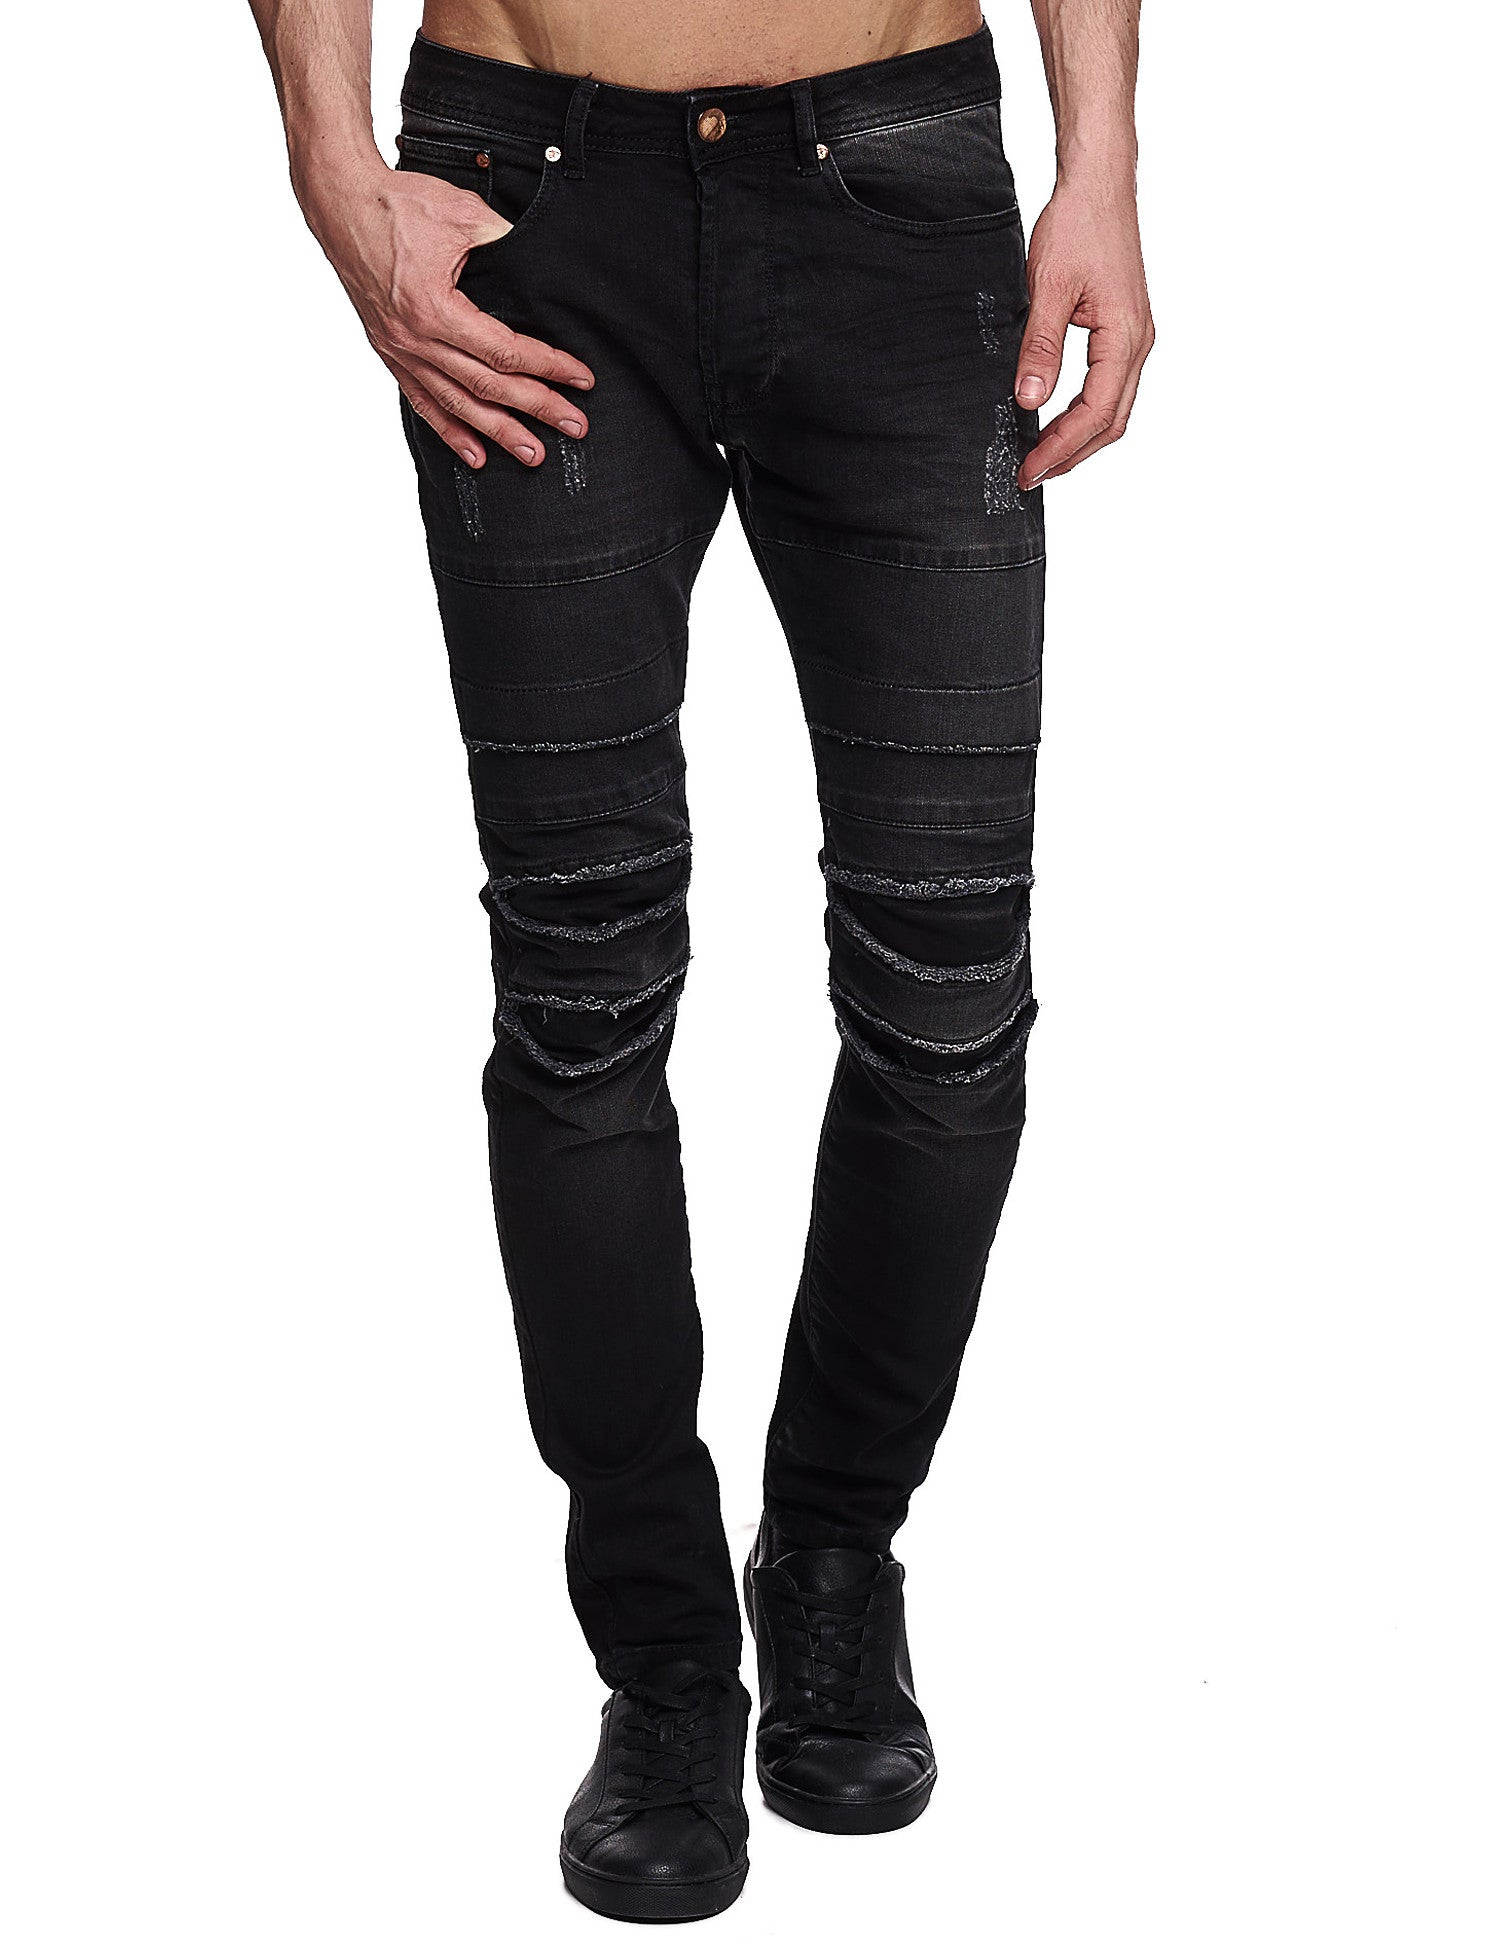 Free Side Rotex Jeans Black